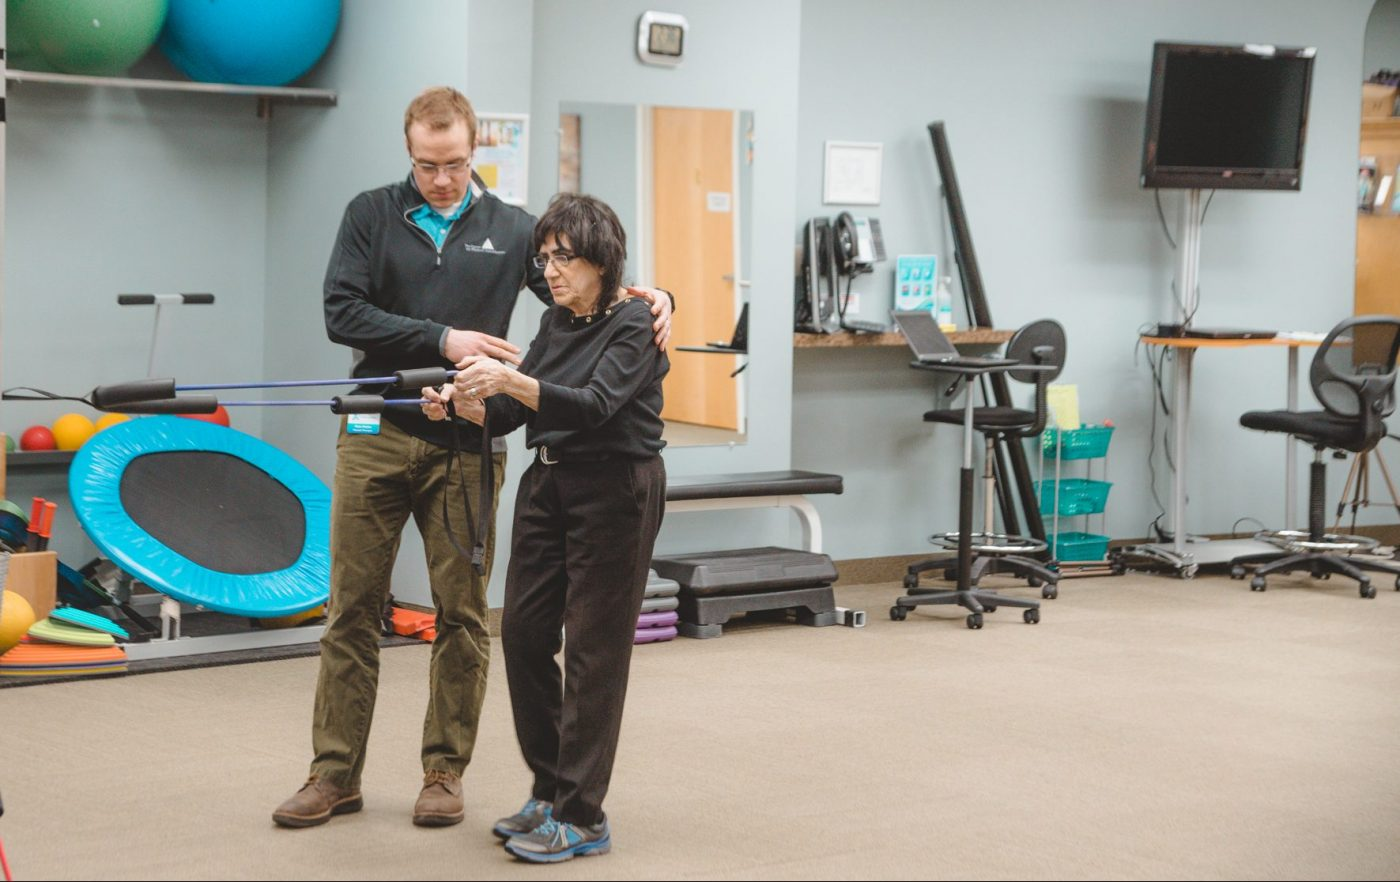 Therapist doing exercise with older patient